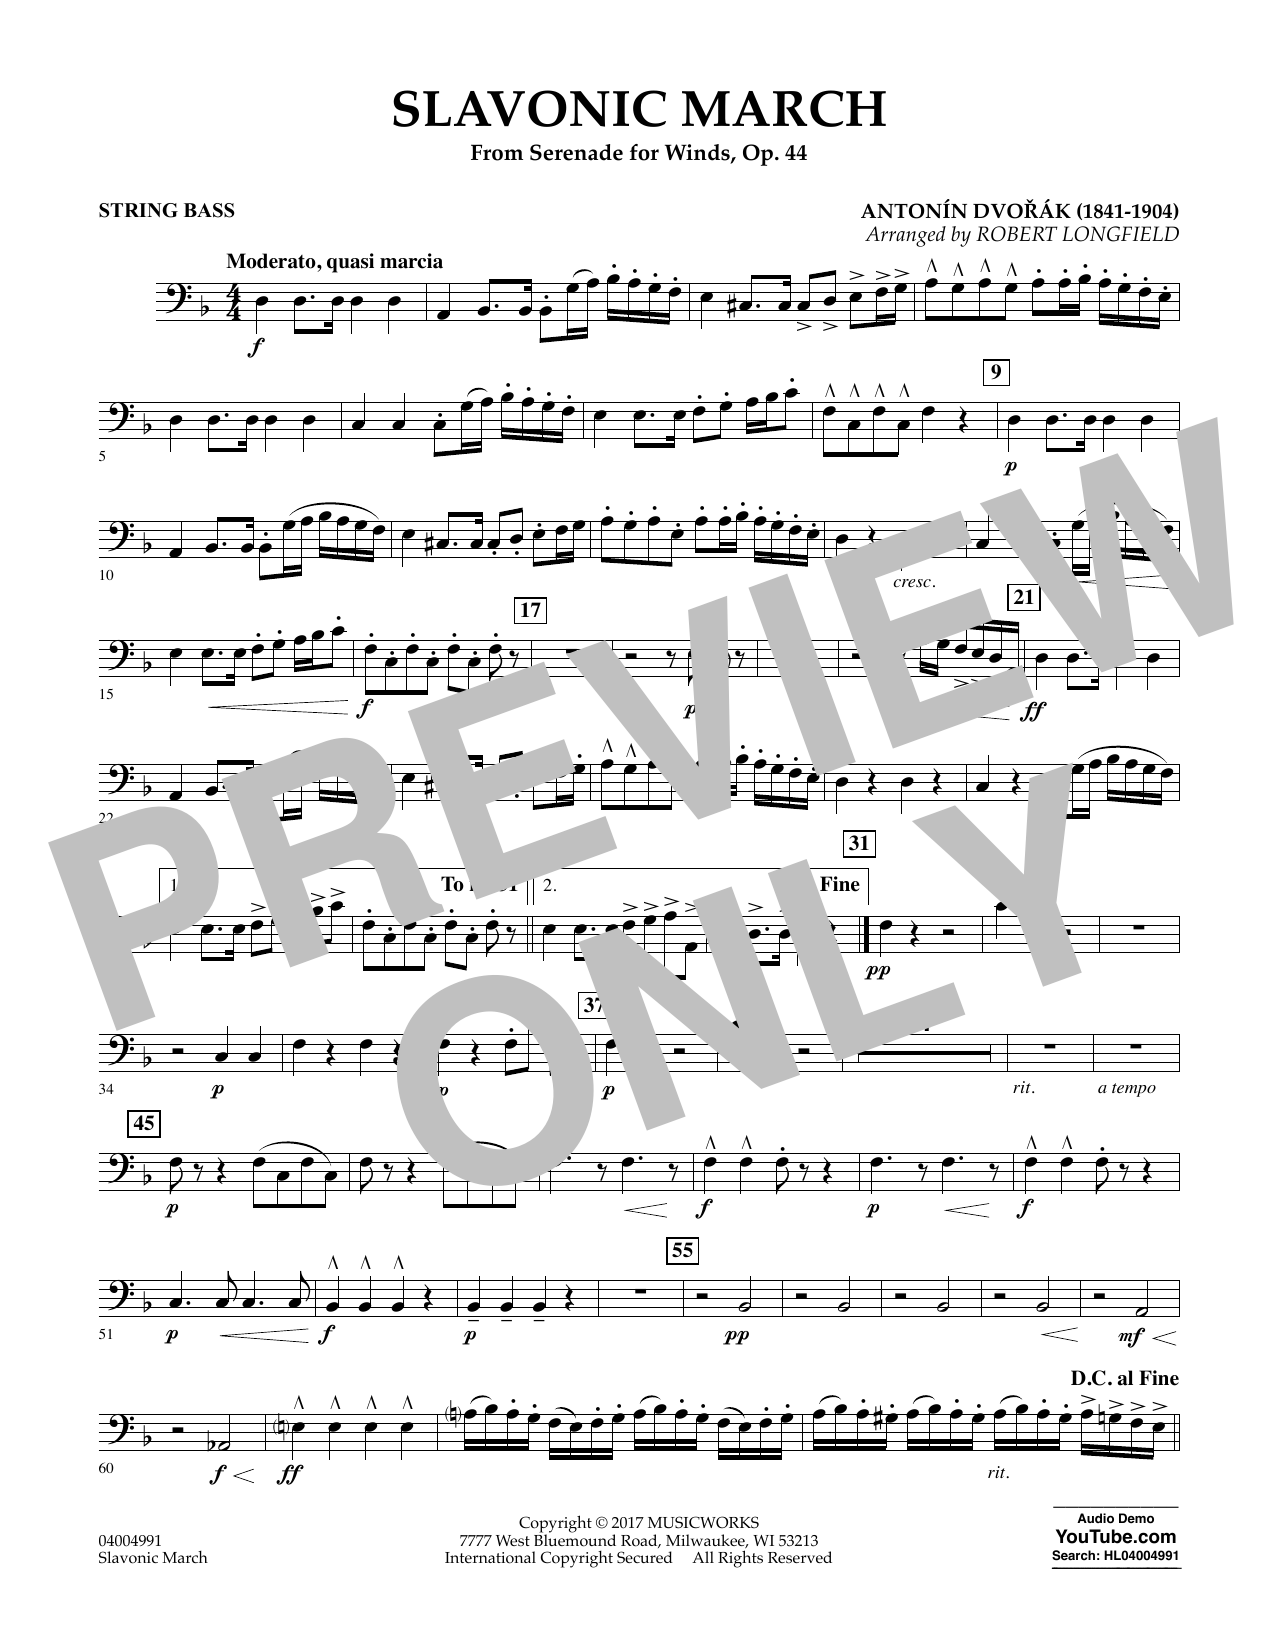 Slavonic March (from Serenade for Winds, Op. 44) - String Bass Sheet Music